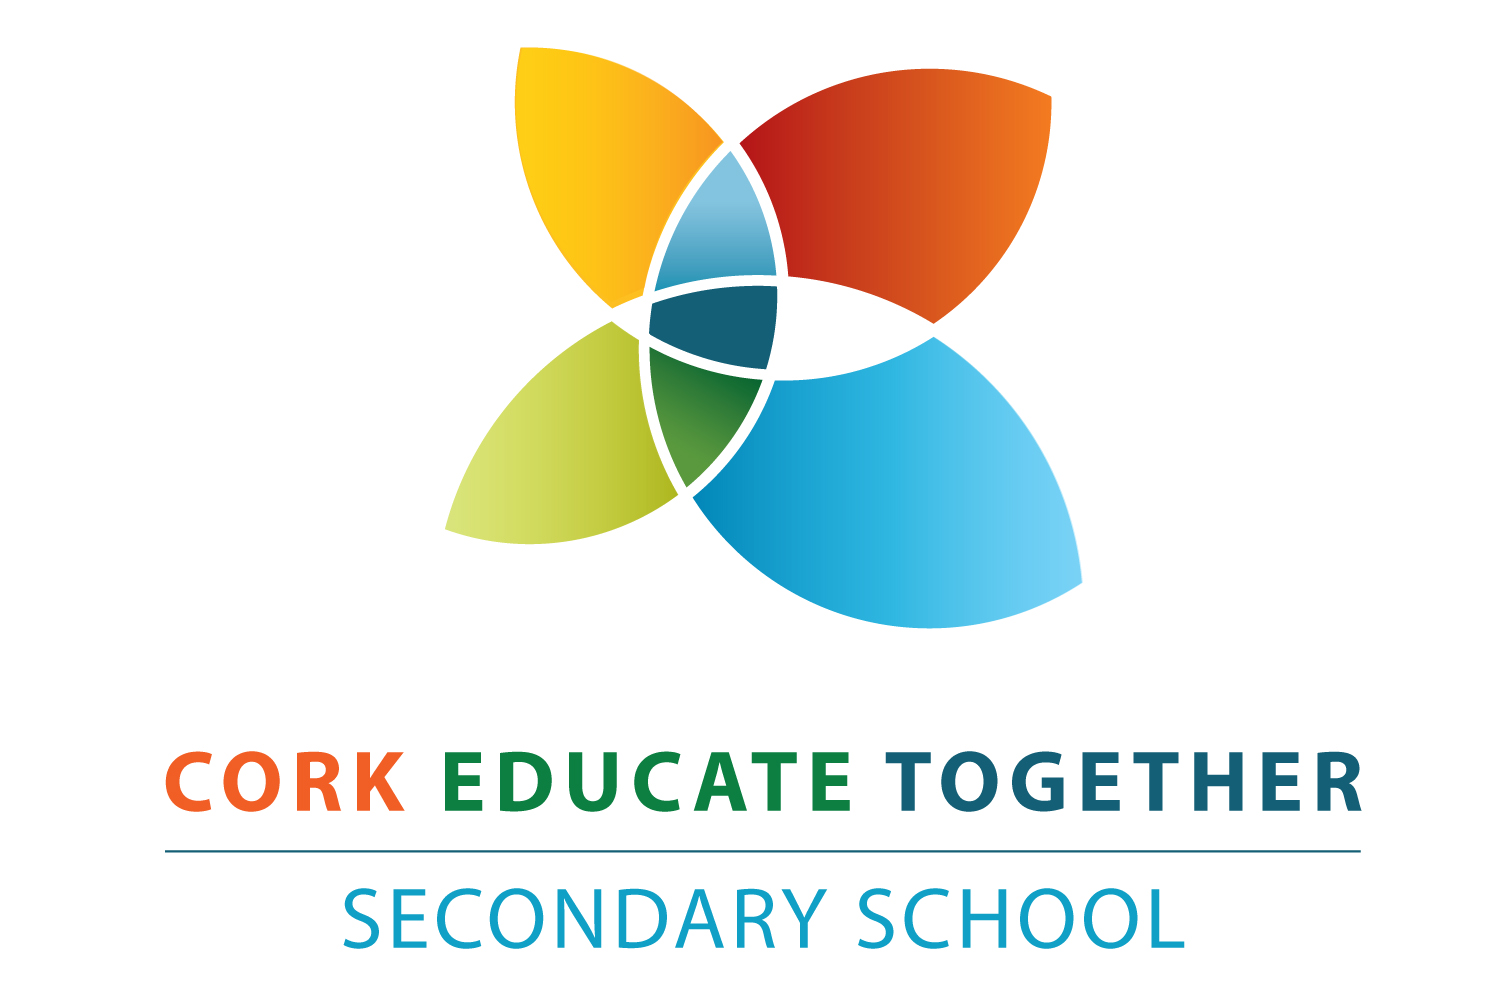 Cork Educate Together Secondary School